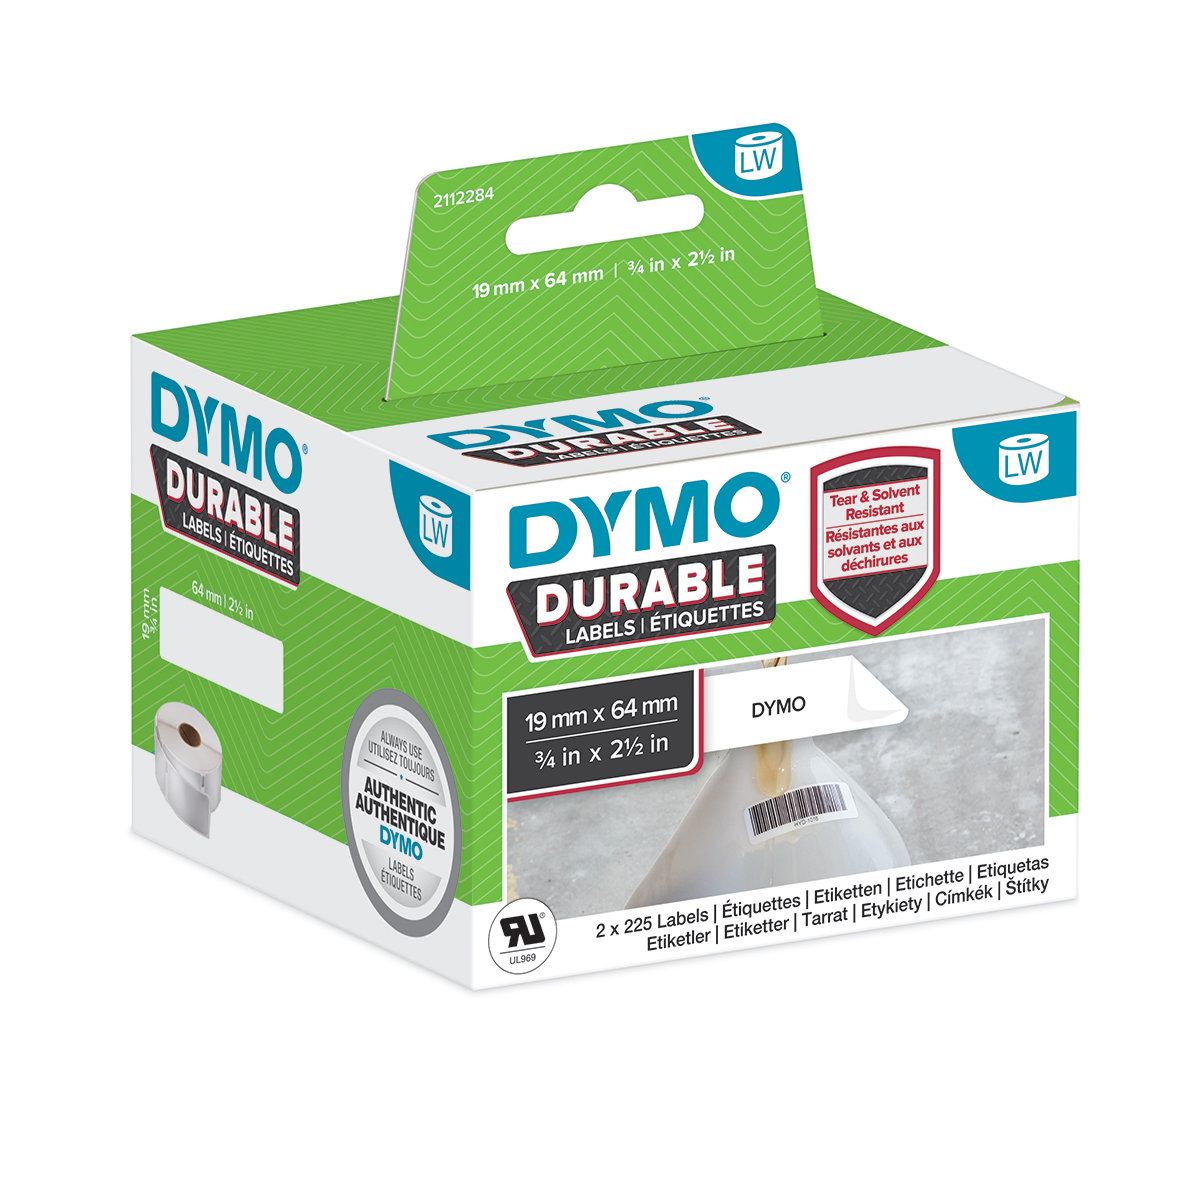 Dymo 2112284 LW Durable Barcode label 19mm x 64mm Black on White